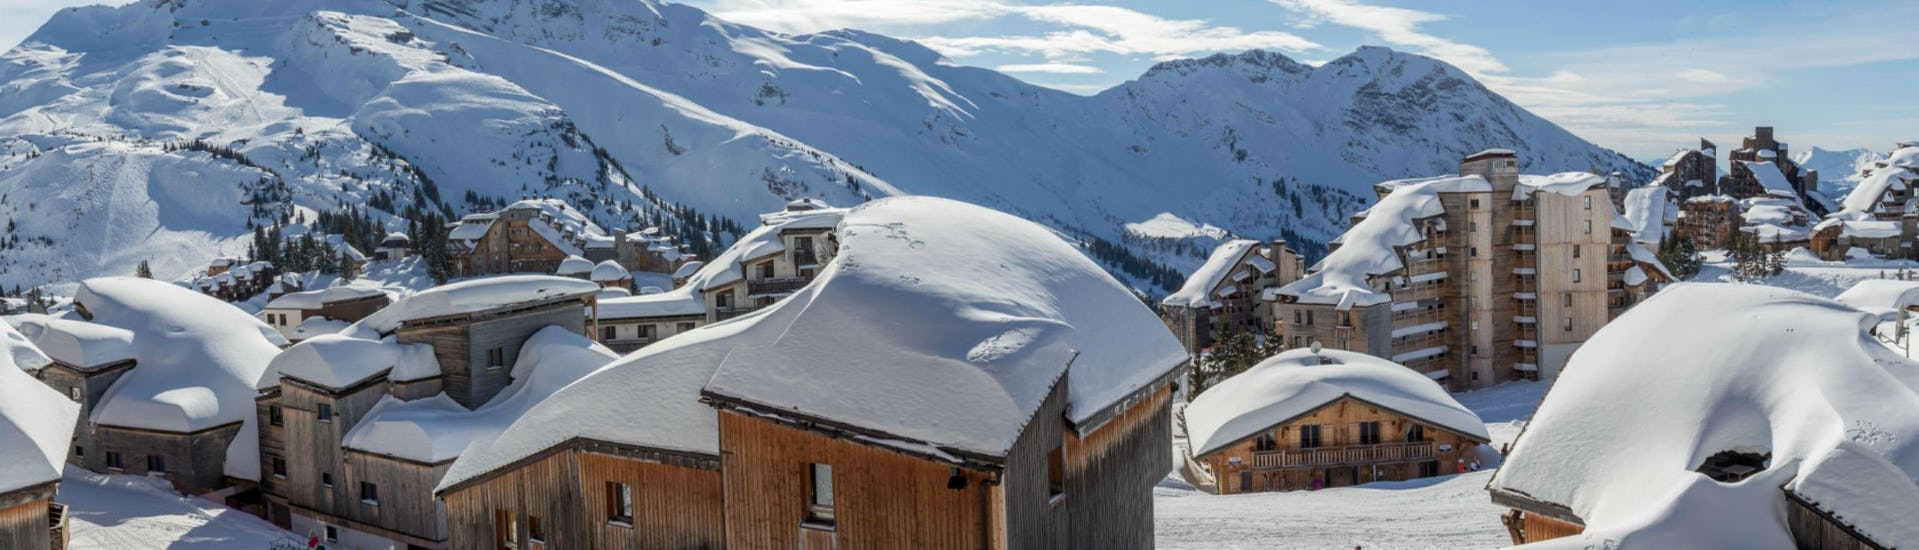 A panoramic view of the snow-covered mountain huts and hotels in the French ski resort of Avoriaz, where local ski schools offer a wide selection of ski lessons.